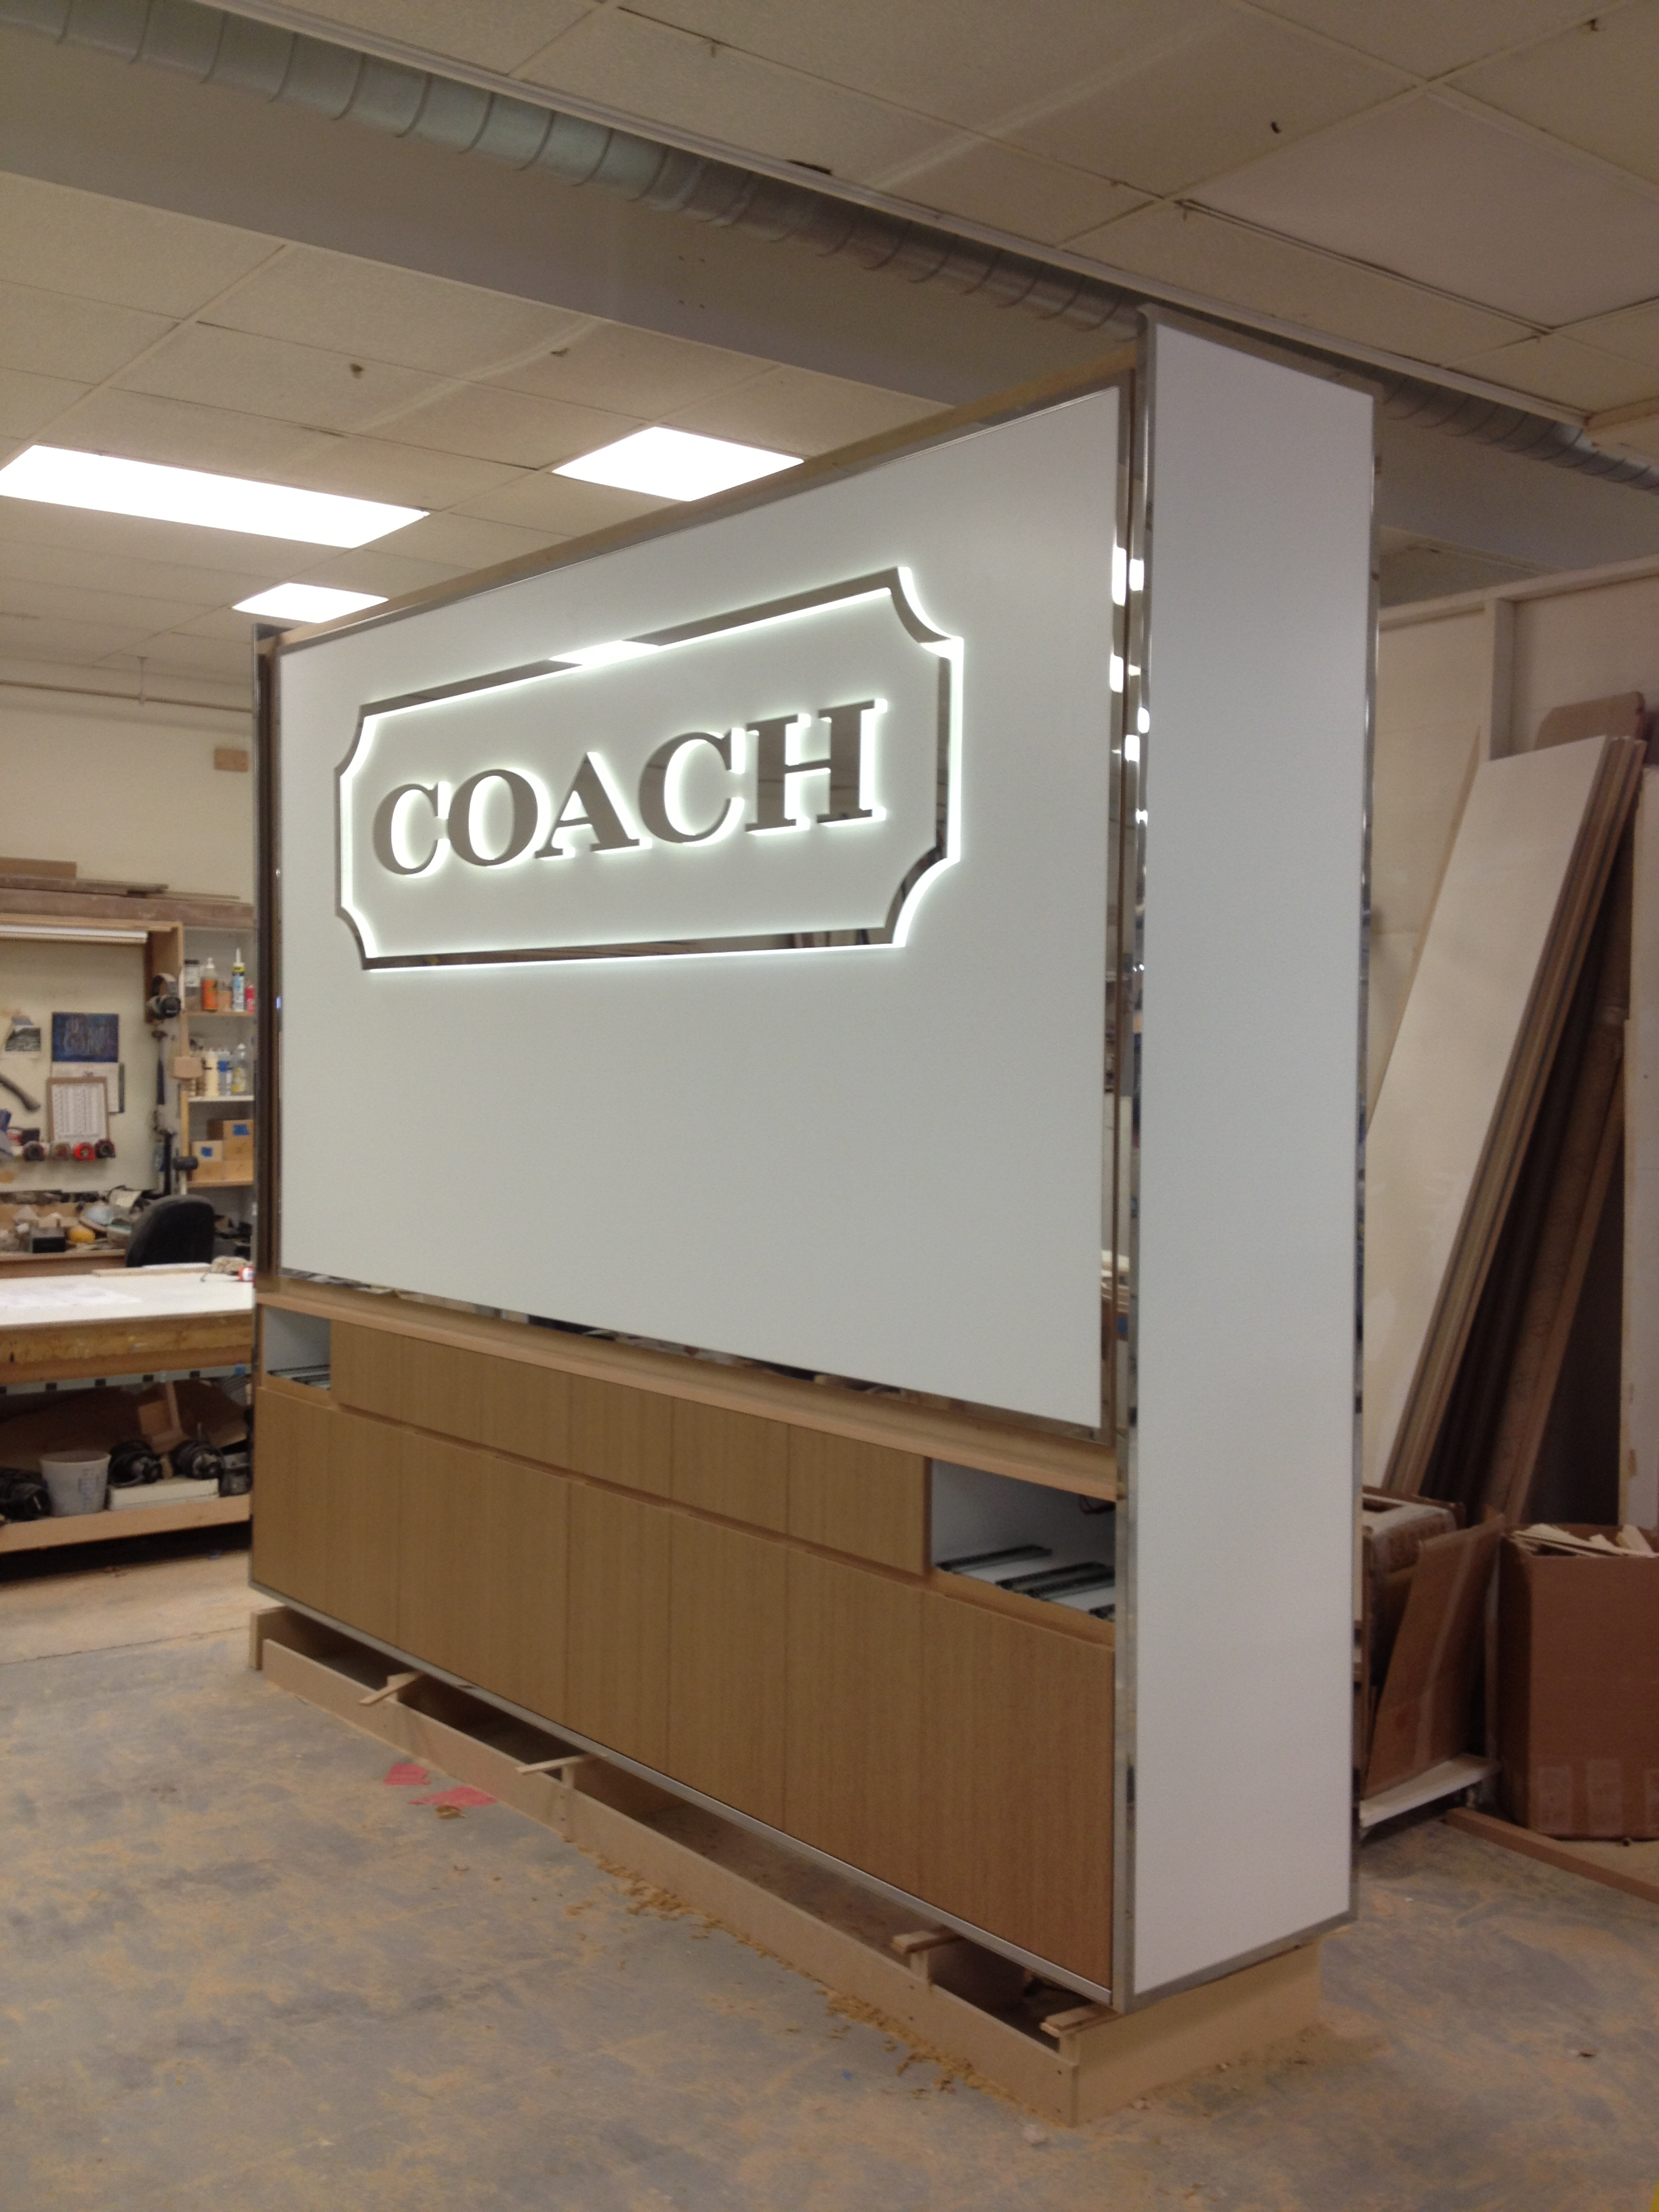 COACH Display